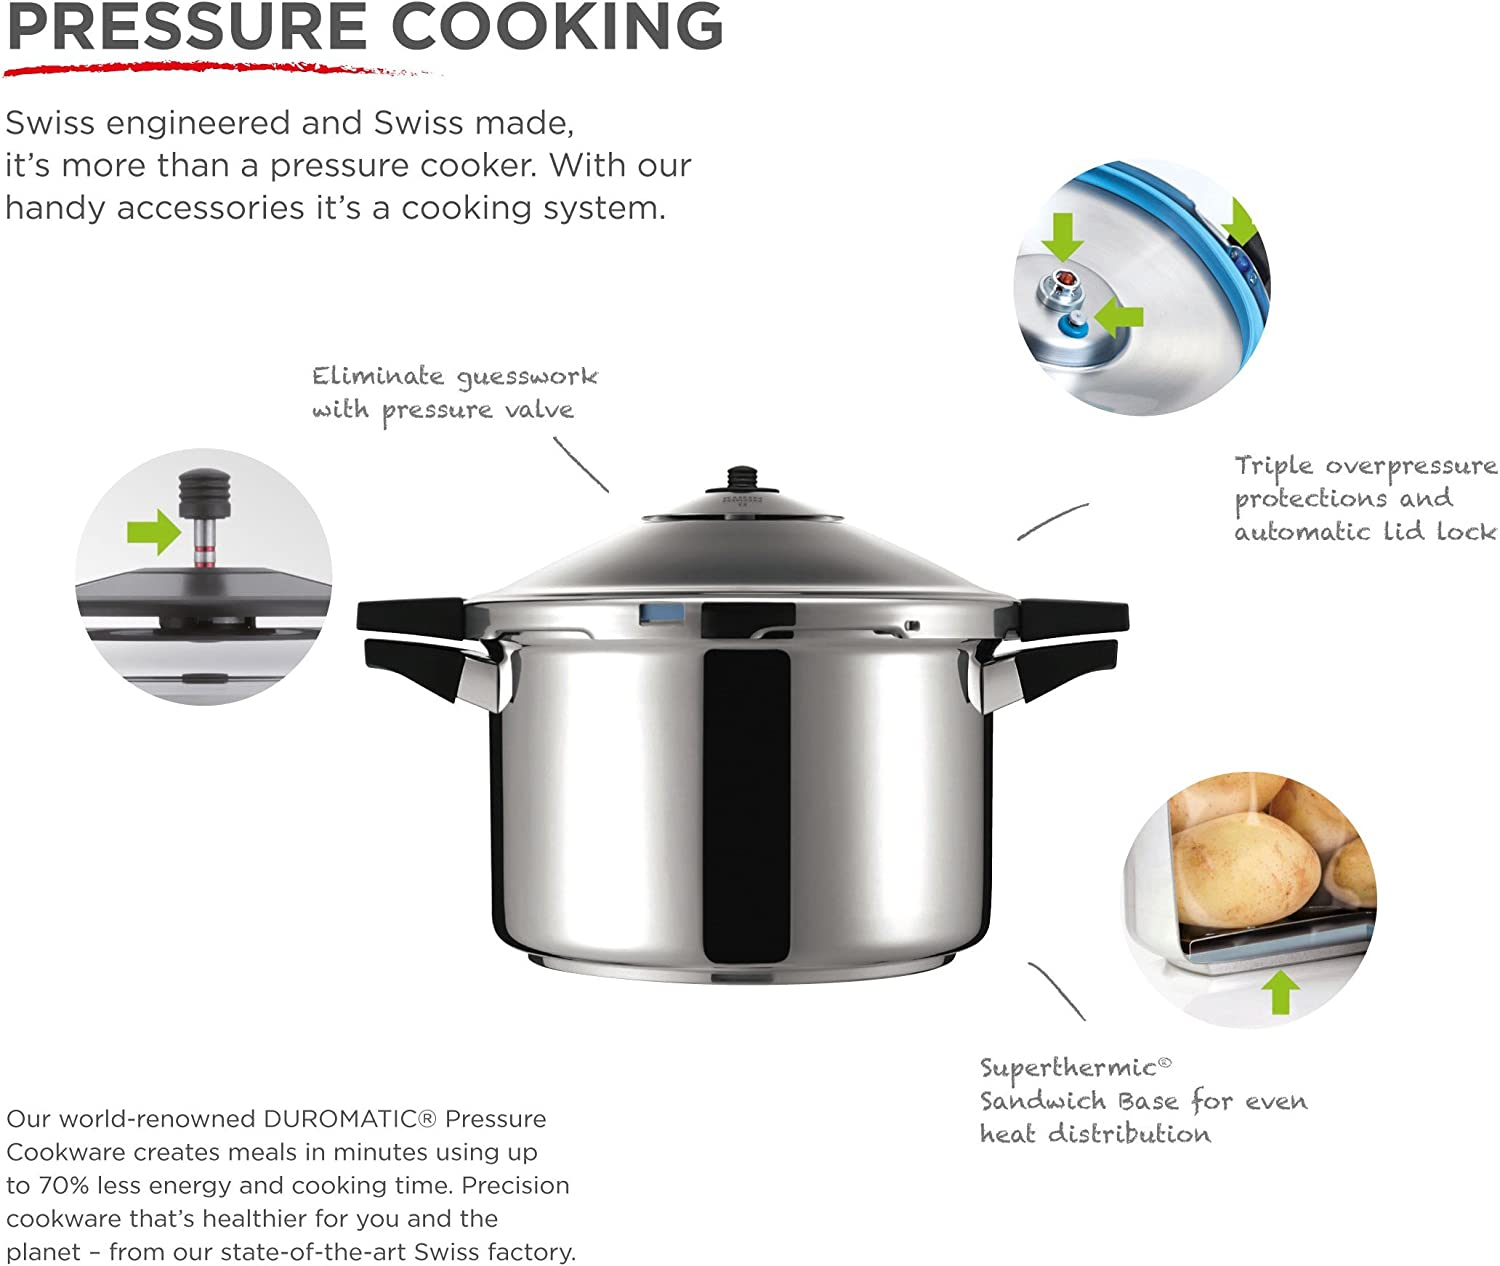 Kuhn Rikon DUROMATIC Pressure Cooker 8.75 5.3 qt best seller family of 4 two handles for stability